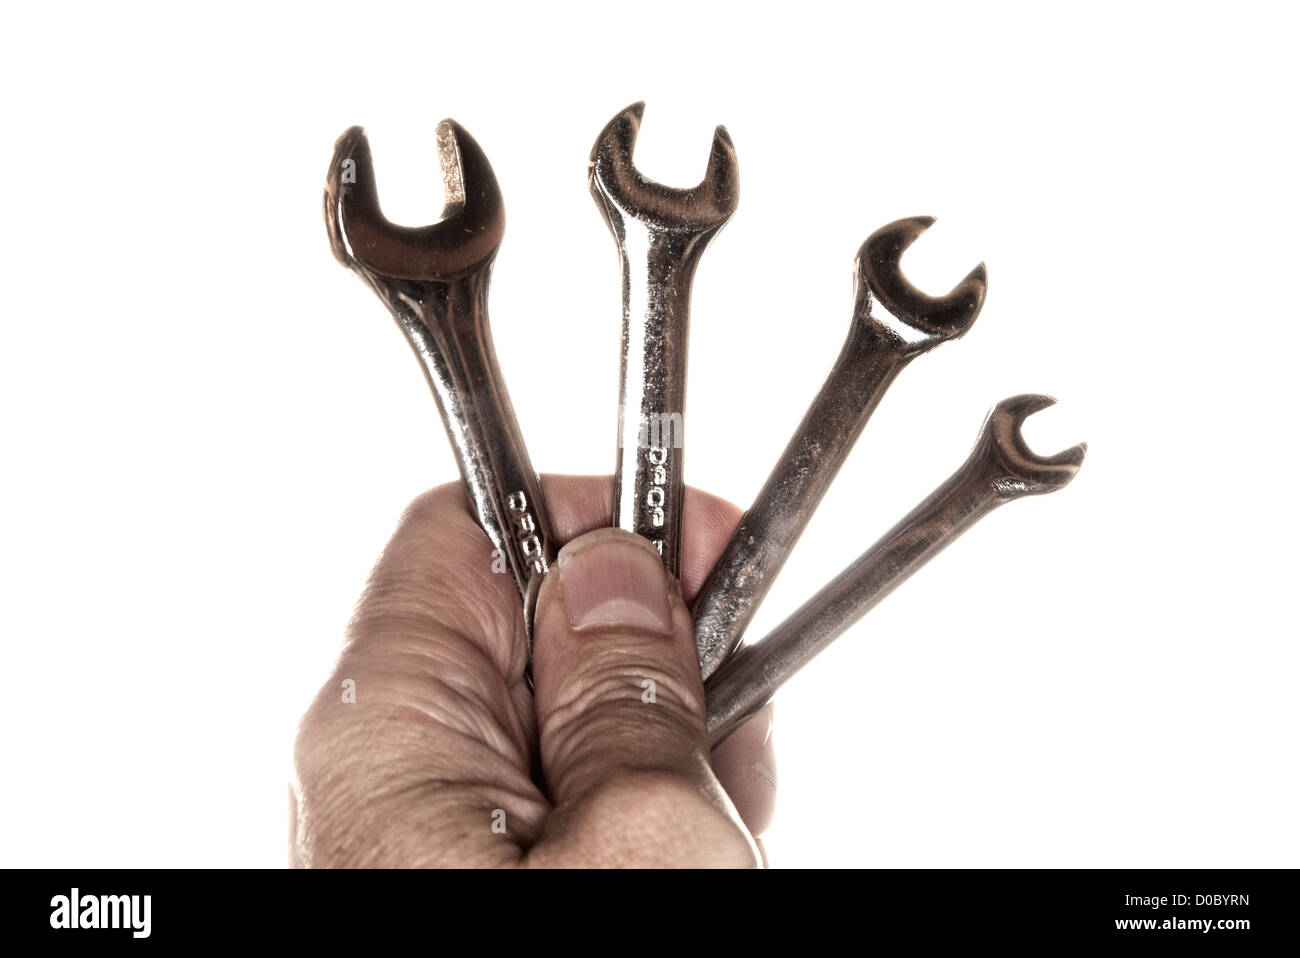 hand holding a set of spanners - Stock Image